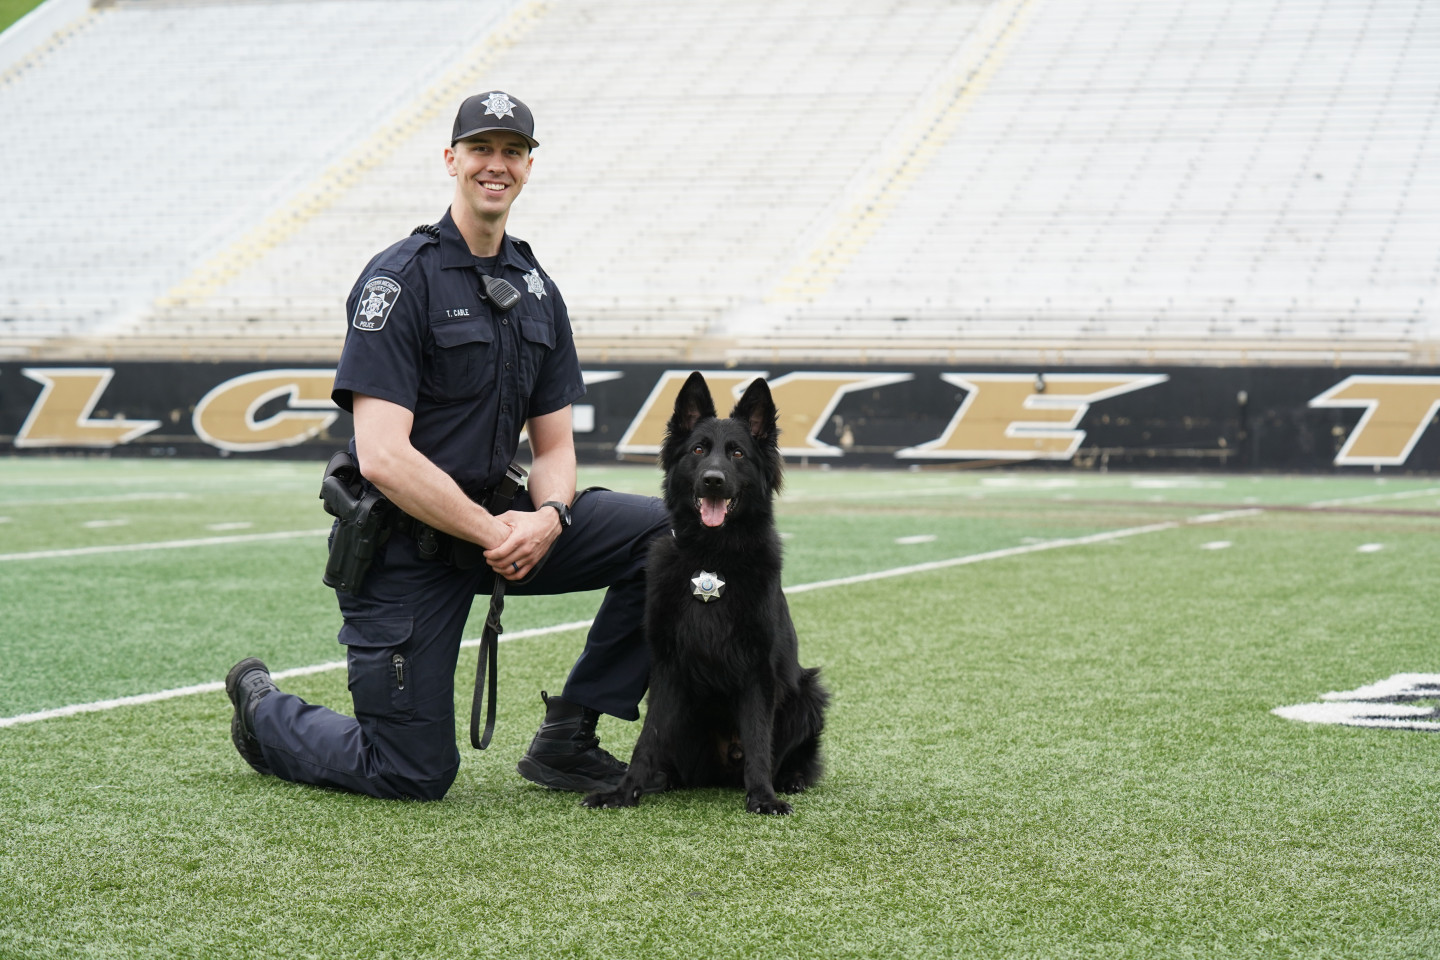 WMU officer Travis Cable poses next to his police K9 on the Waldo Stadium field.